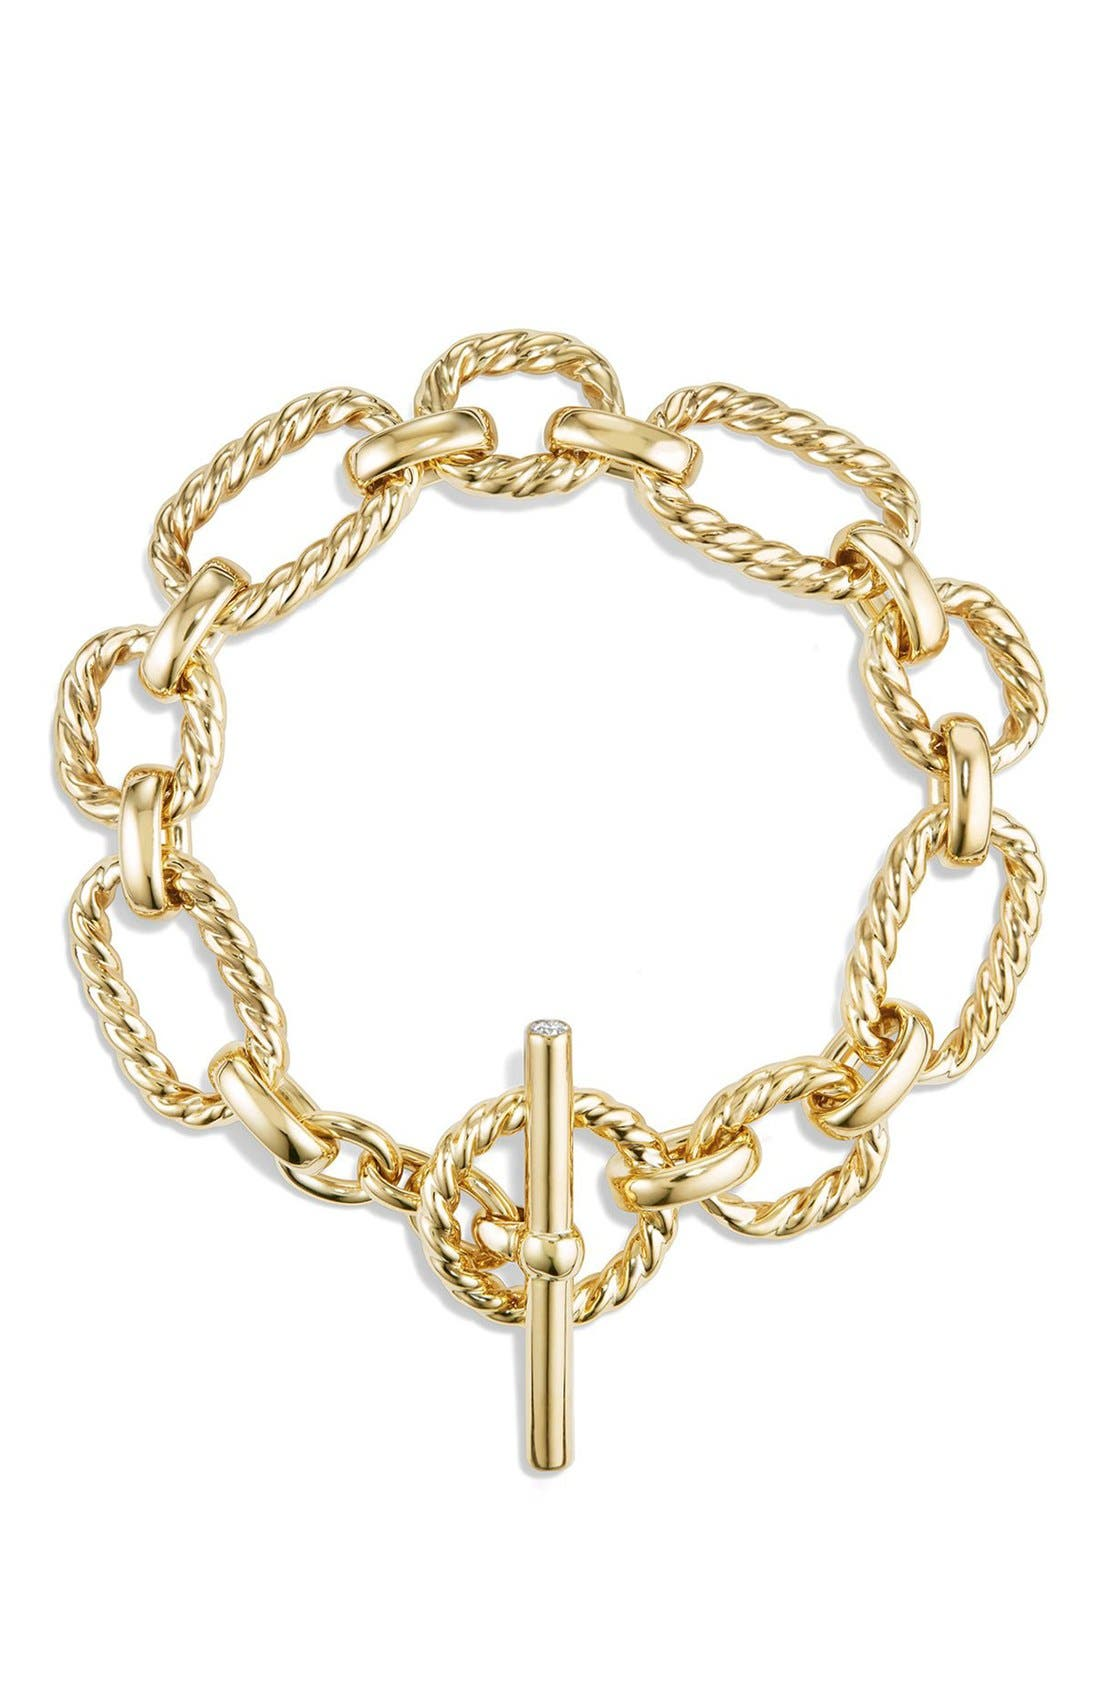 'Chain' Cushion Link Bracelet with Diamonds in 18K Gold,                             Alternate thumbnail 4, color,                             GOLD